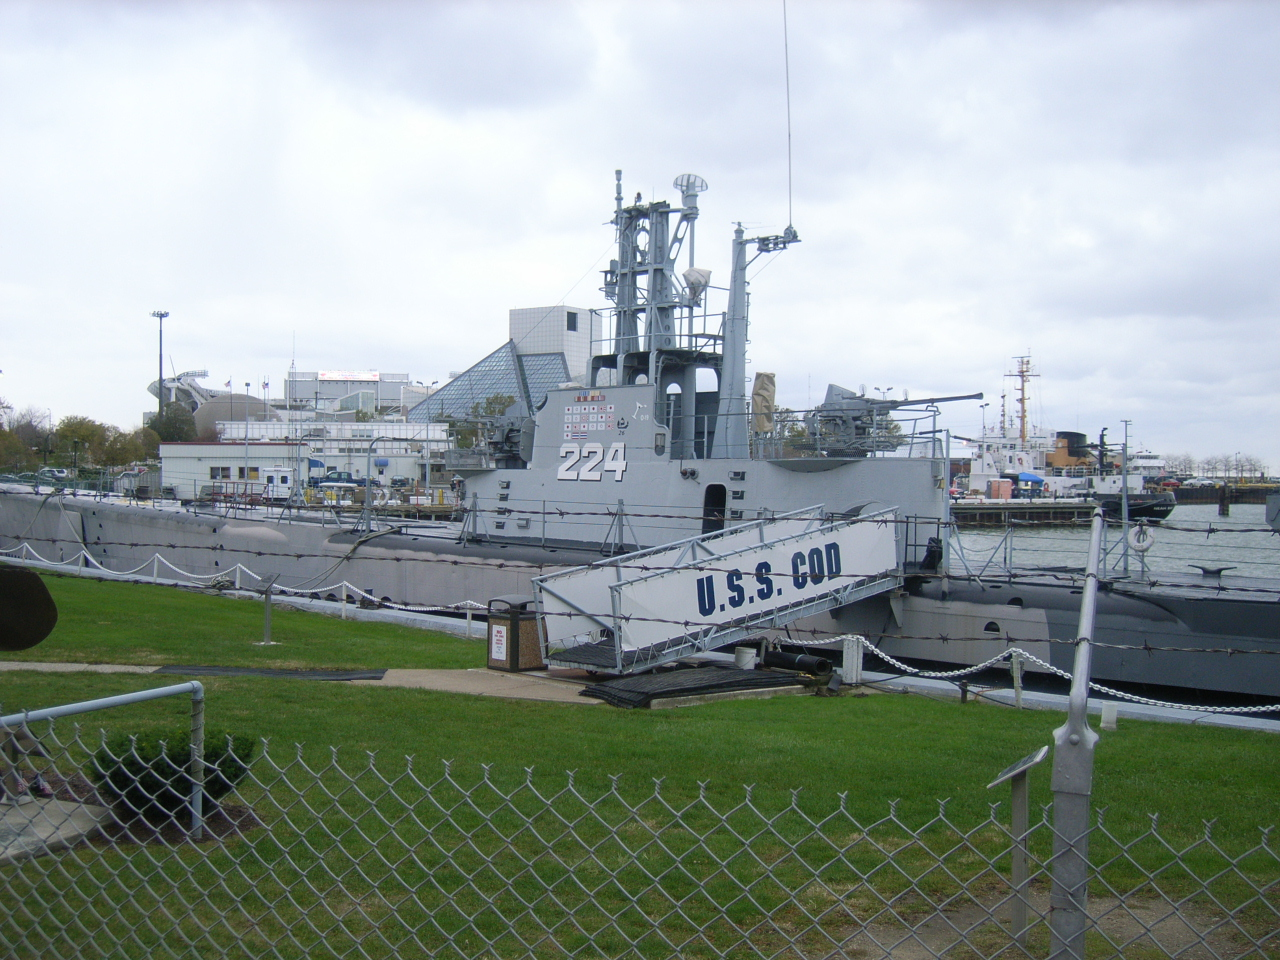 Exterior shot of the USS Cod